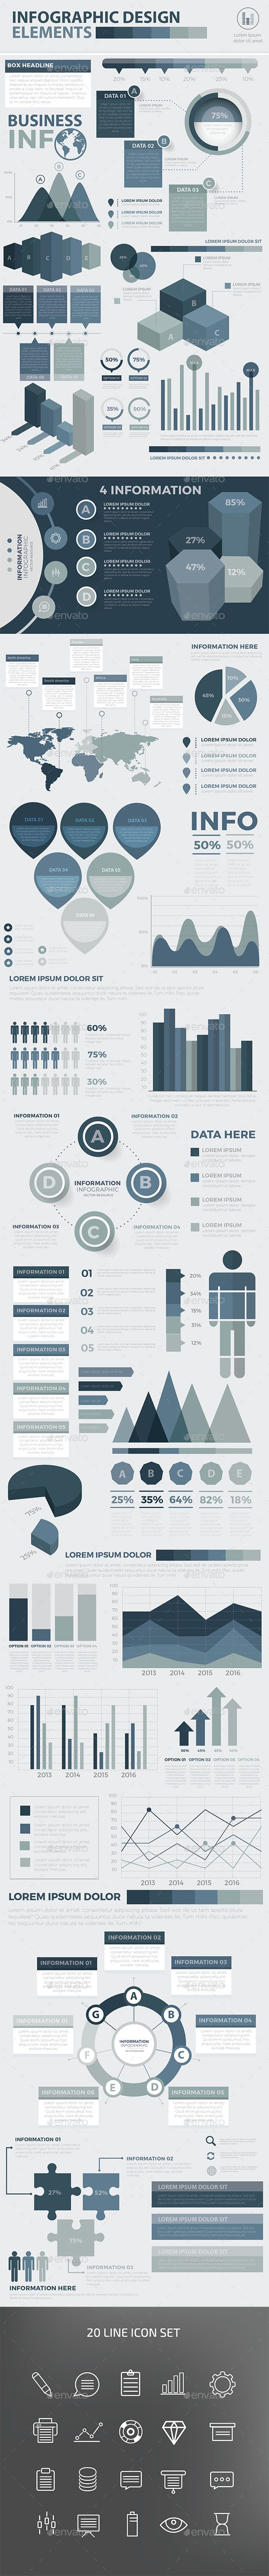 Modern Infographic Elements Design Template Vector EPS, AI Illustrator. Download here: http://graphicriver.net/item/modern-infographic-elements-design/16480725?ref=ksioks